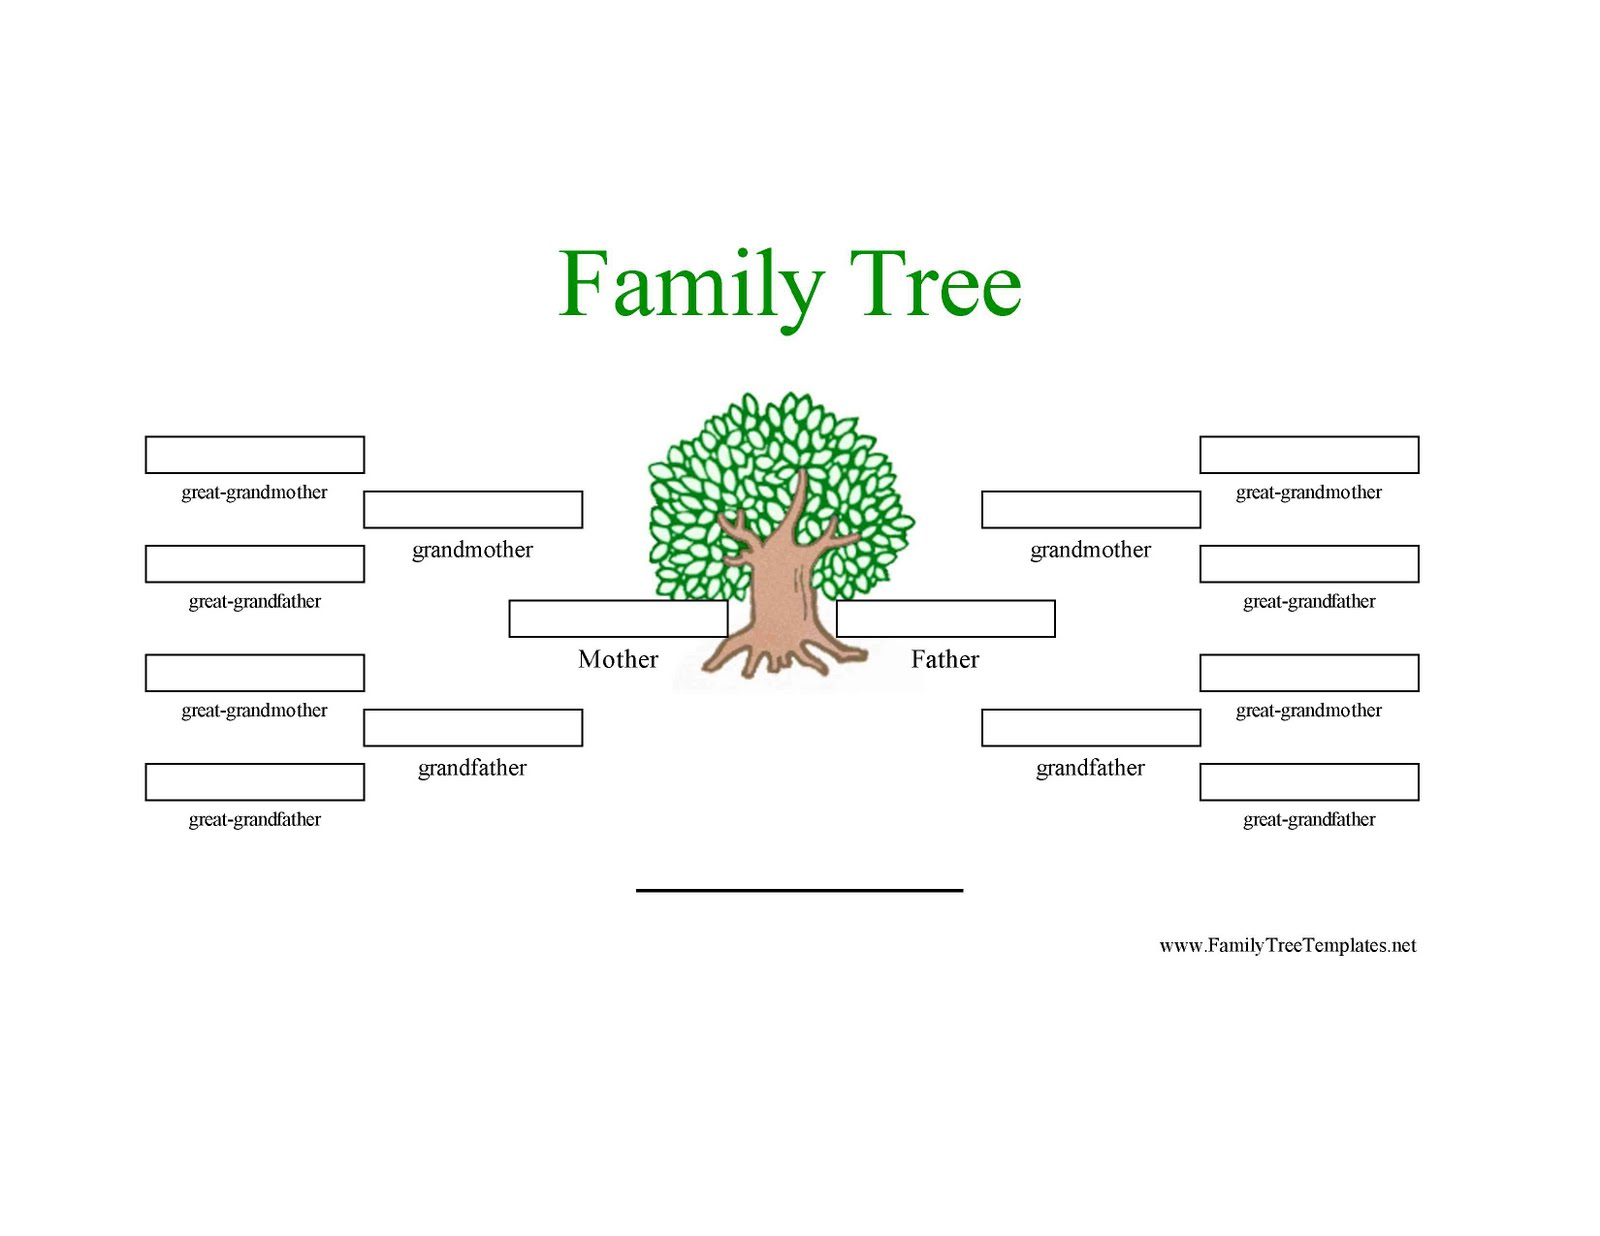 Family Tree Template: Family Tree Template Three Generation